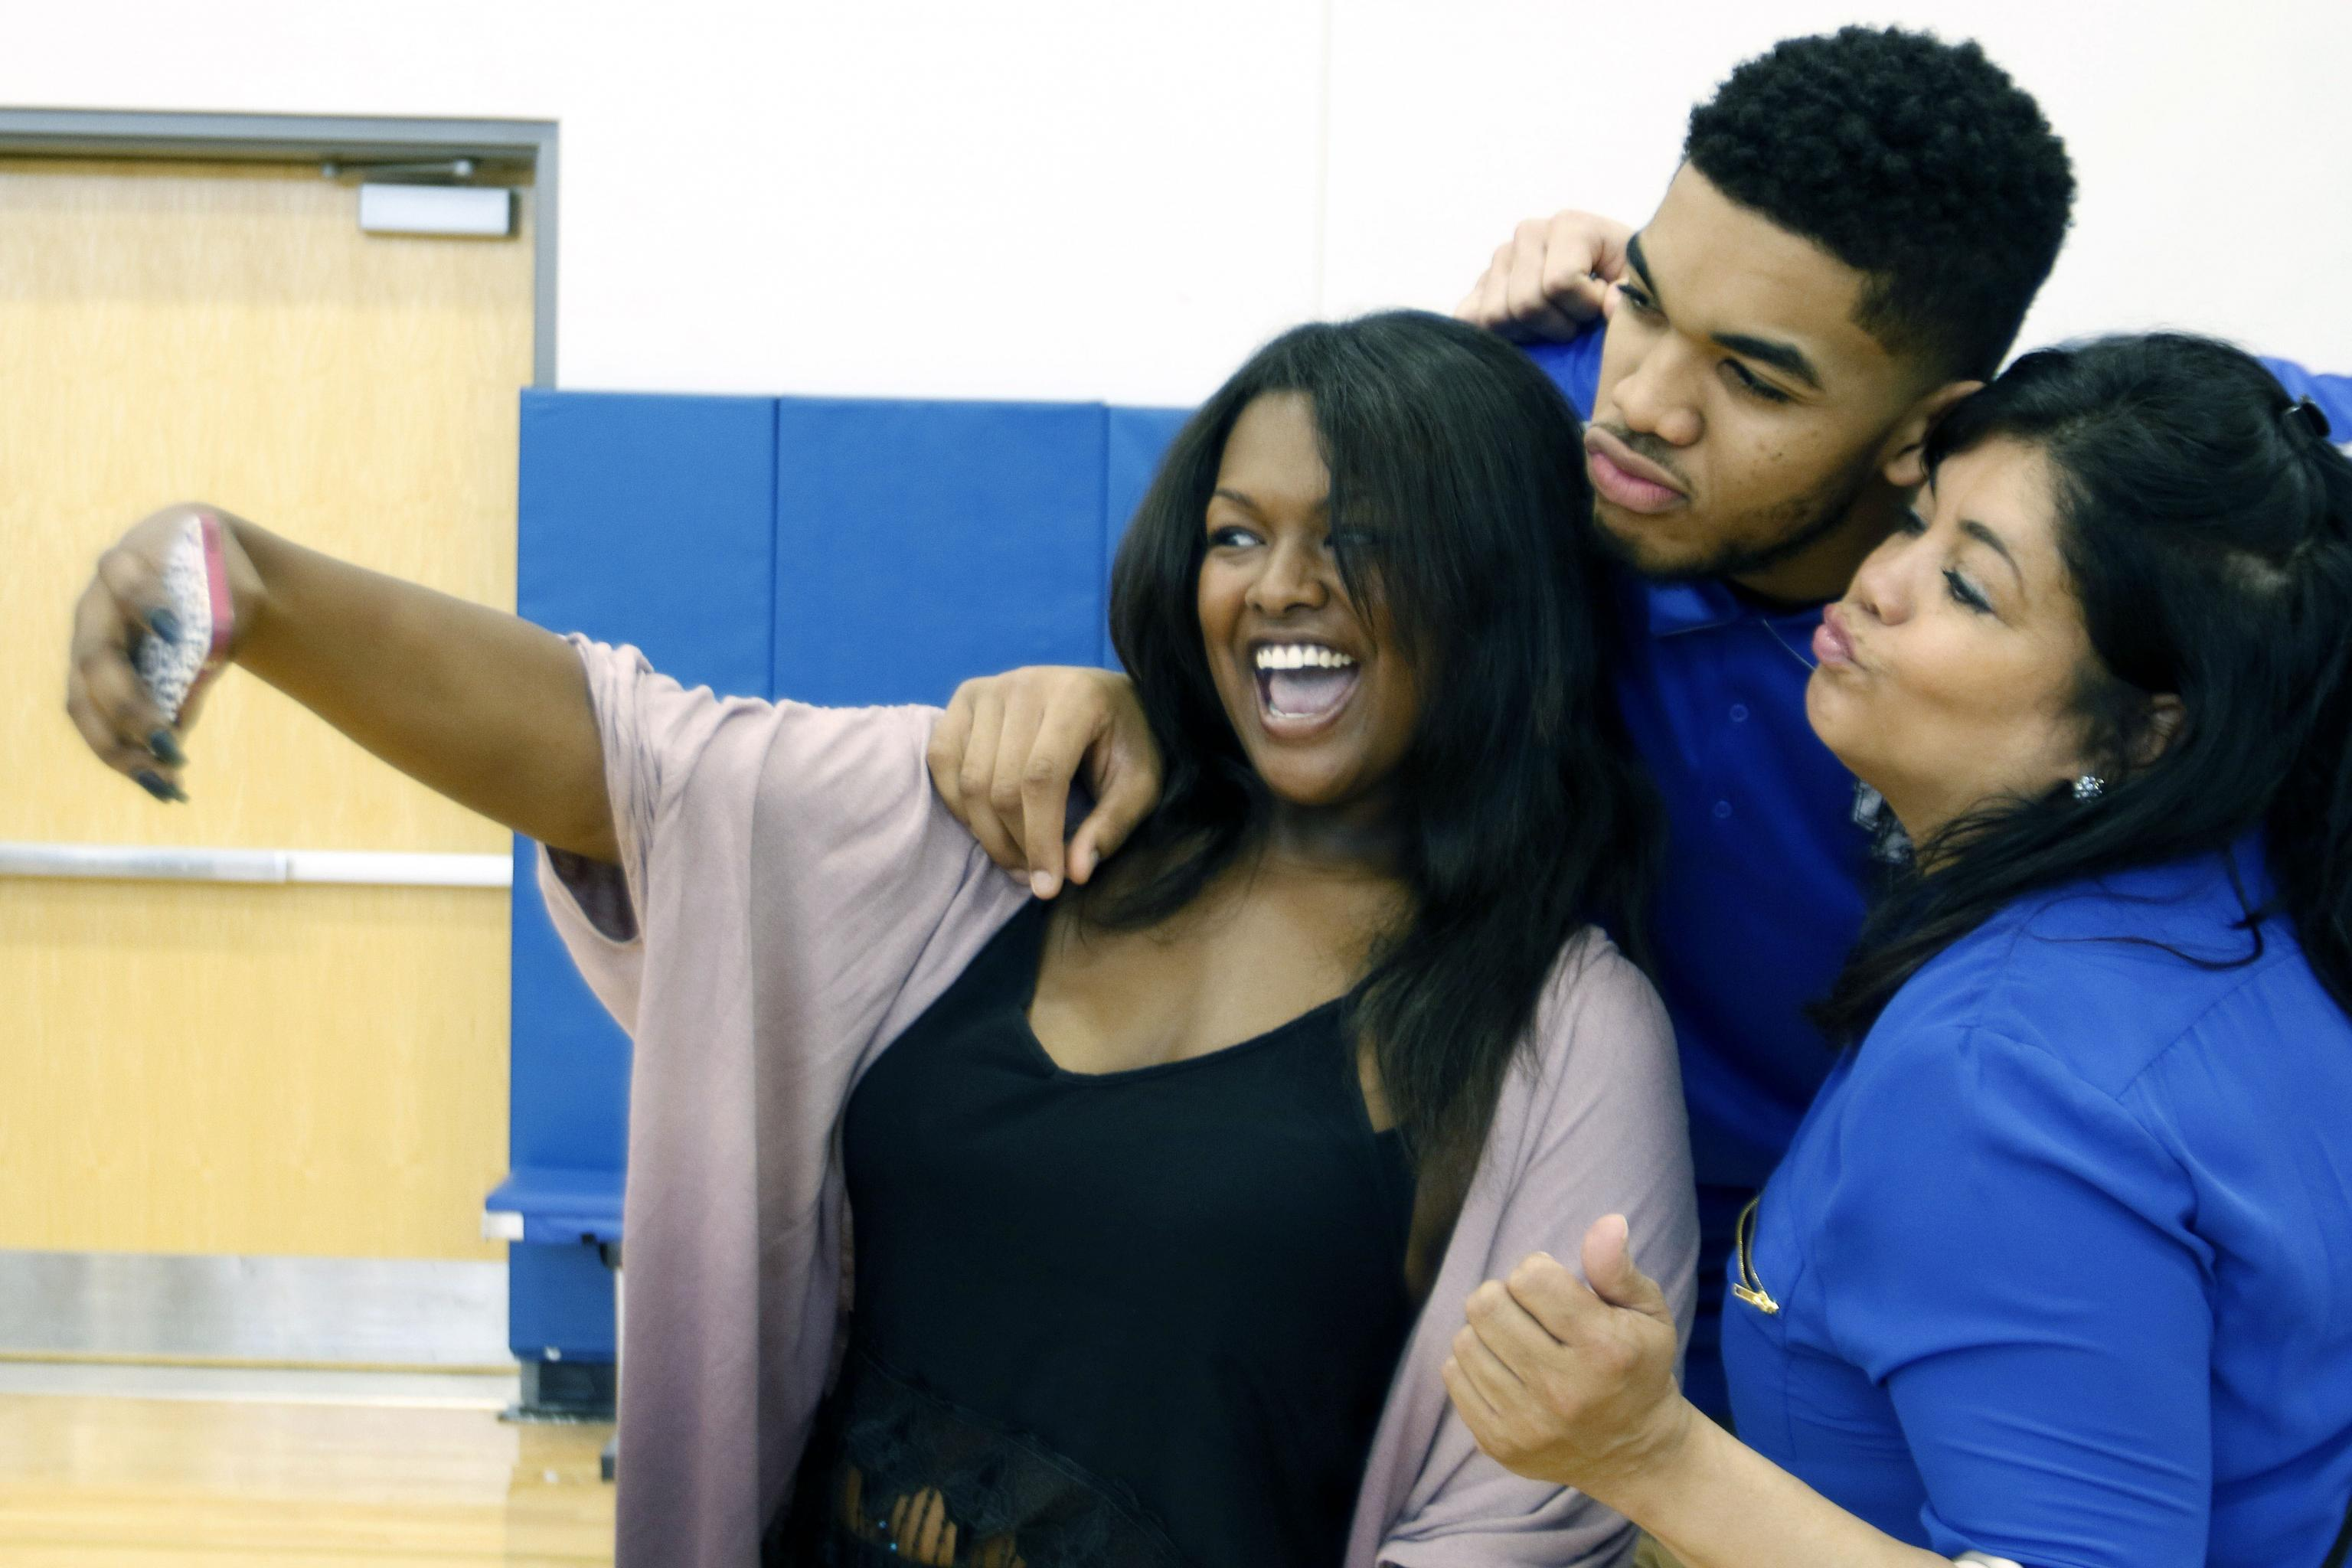 Karl Anthony Towns Pays Tribute To Late Mother Jacqueline Cruz On Her Birthday Bleacher Report Latest News Videos And Highlights